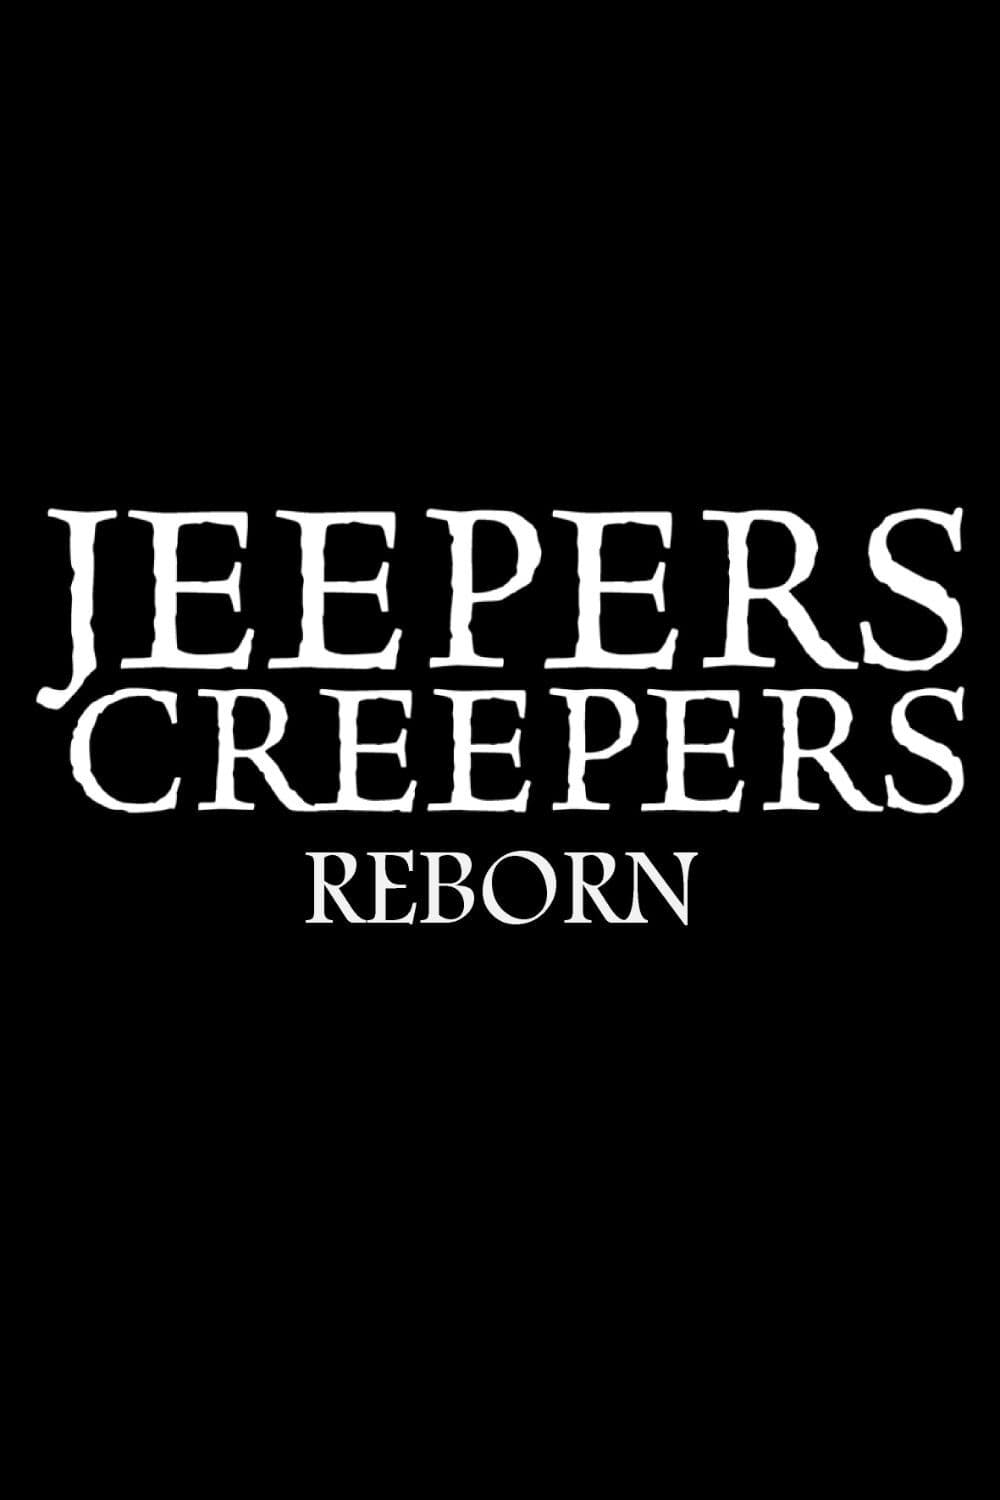 Jeepers Creepers: Reborn poster